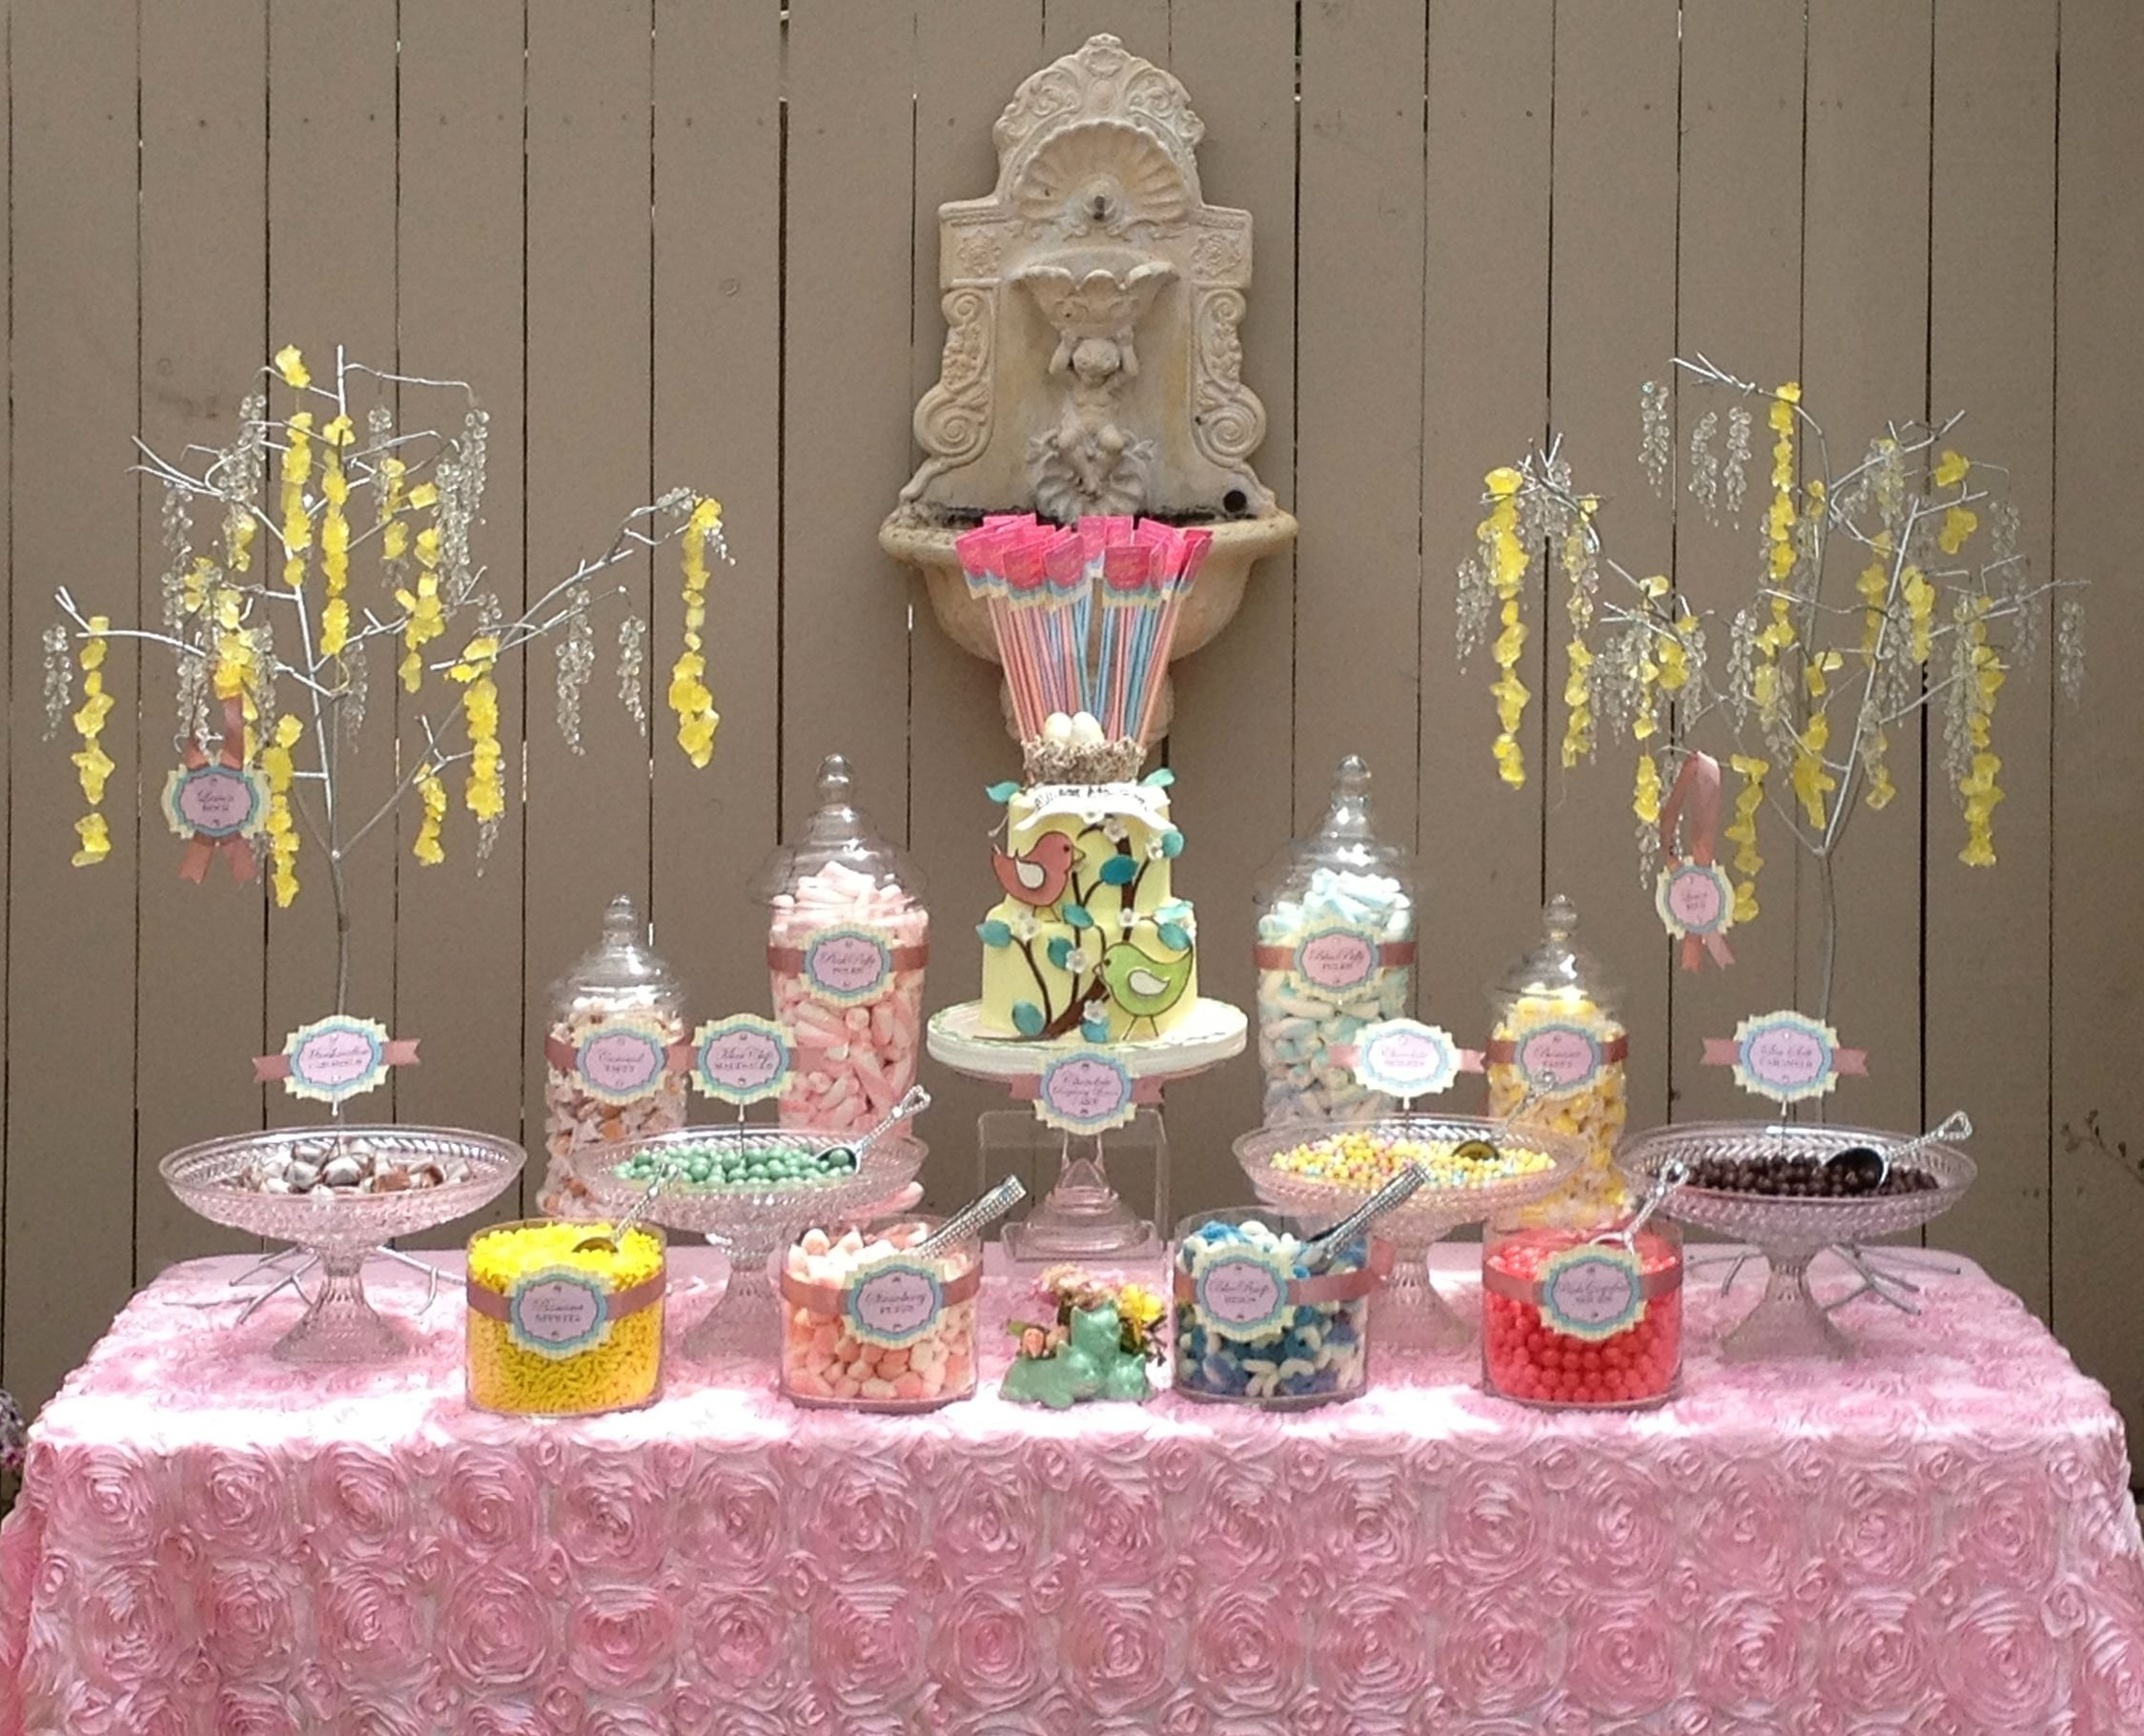 10 Elegant Baby Shower Candy Bar Ideas baby shower candy buffet ideas exceptional 1602753 orig boy table